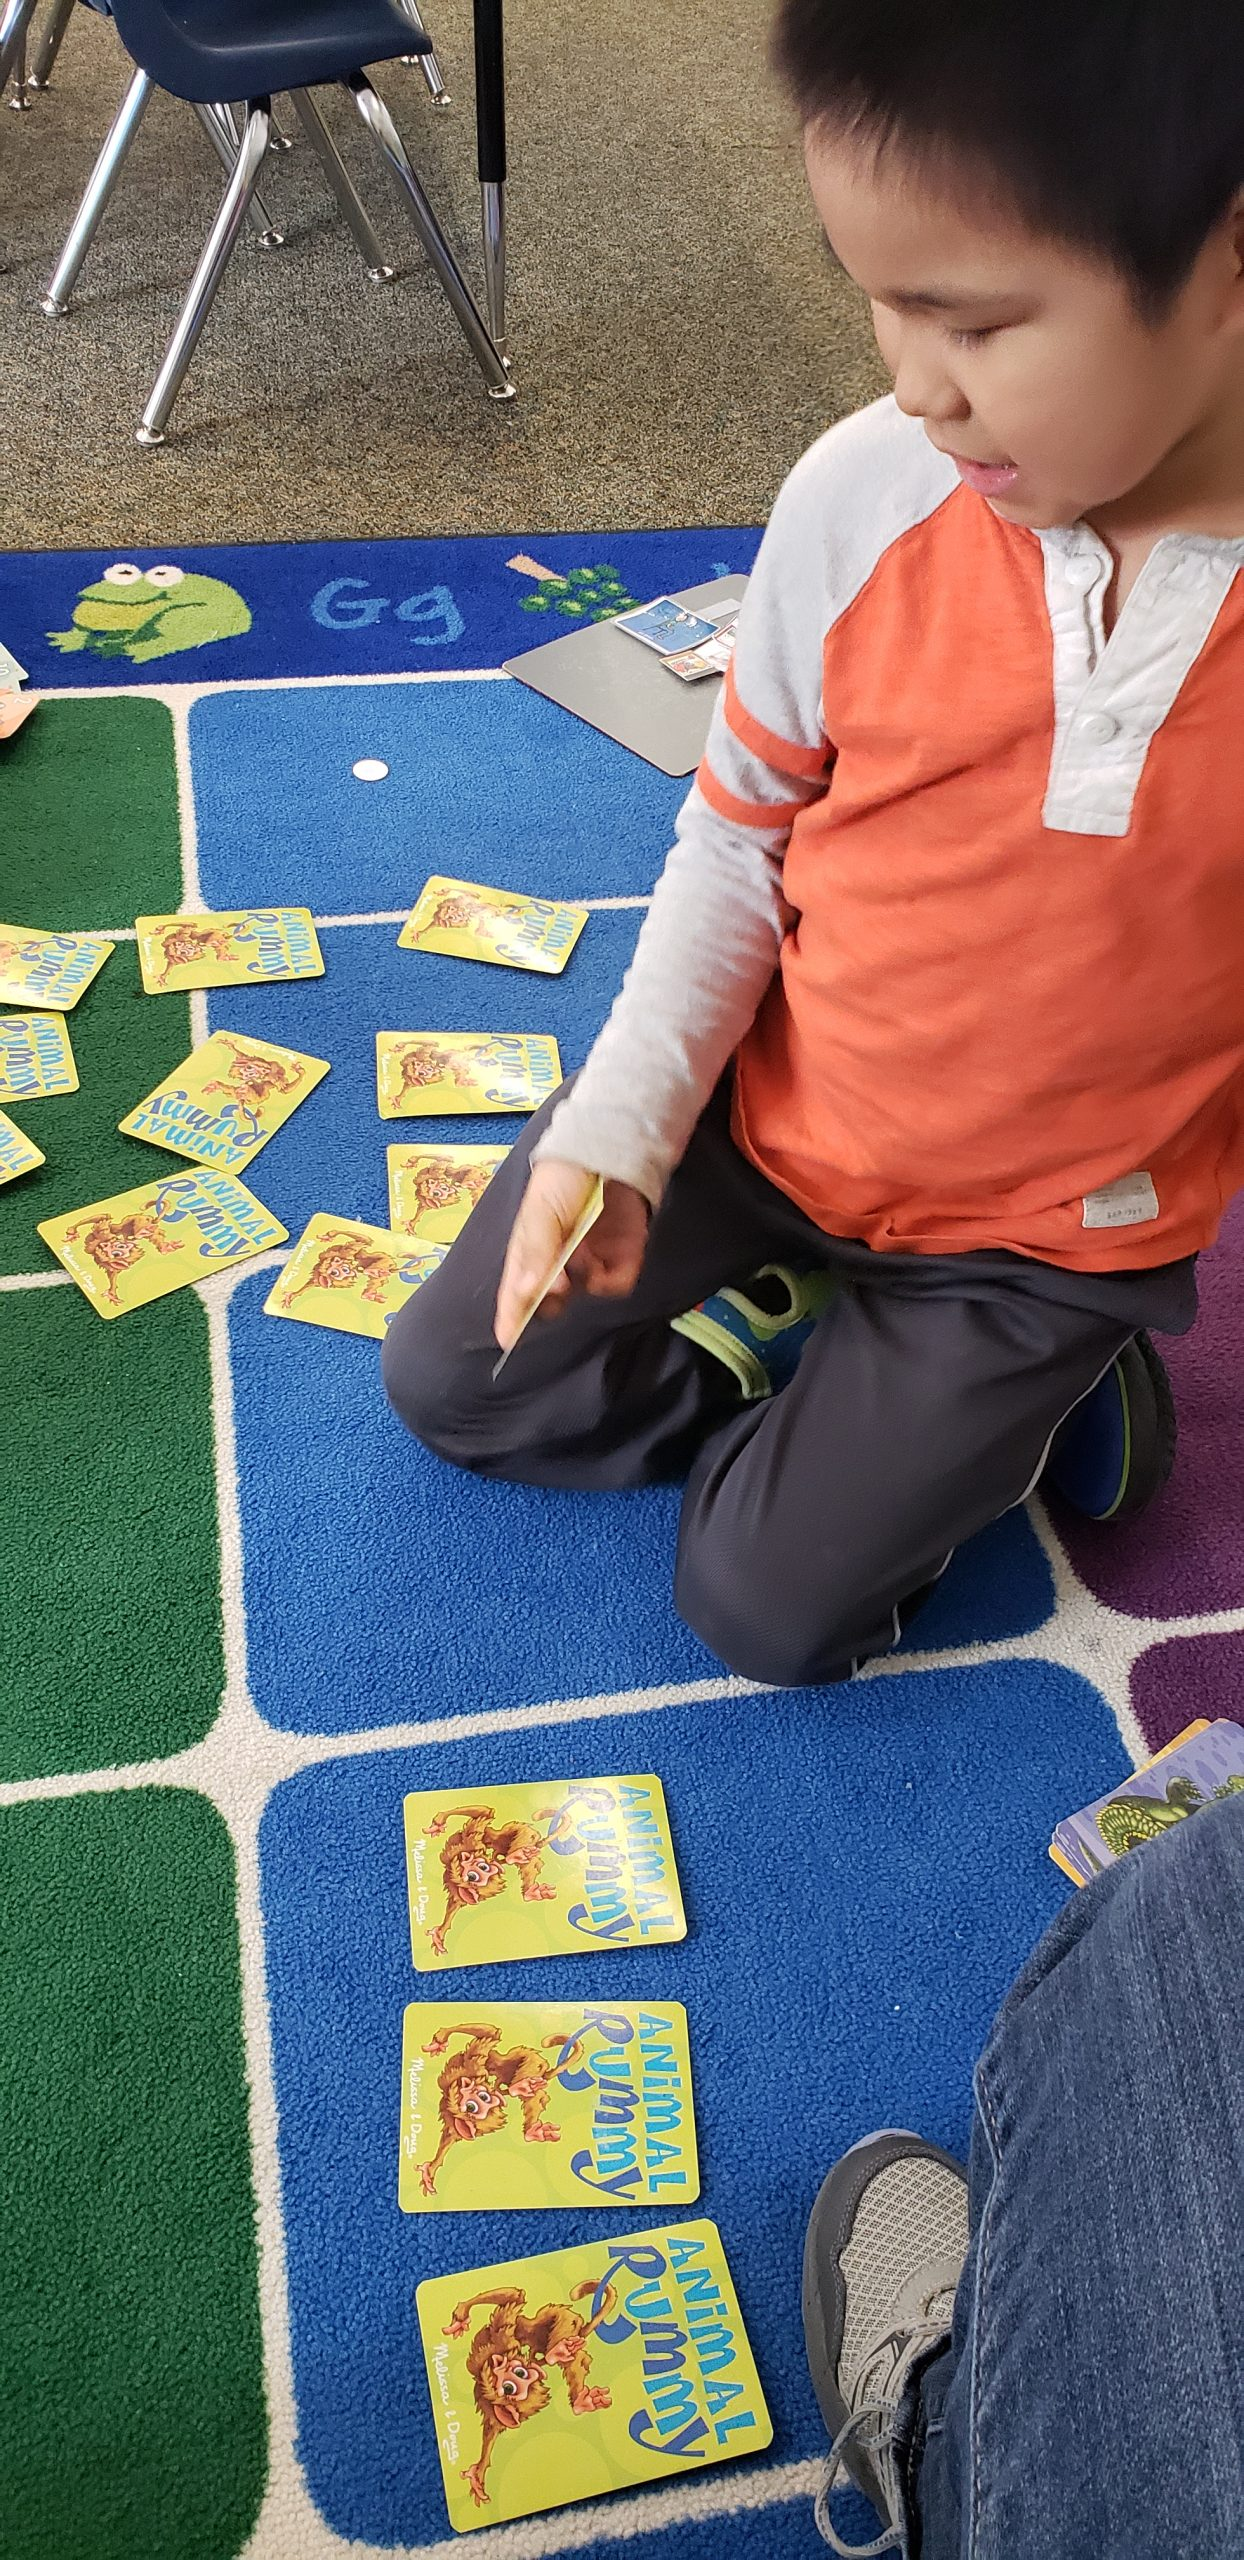 Elementary student playing a memory card game on a colorful carpet.